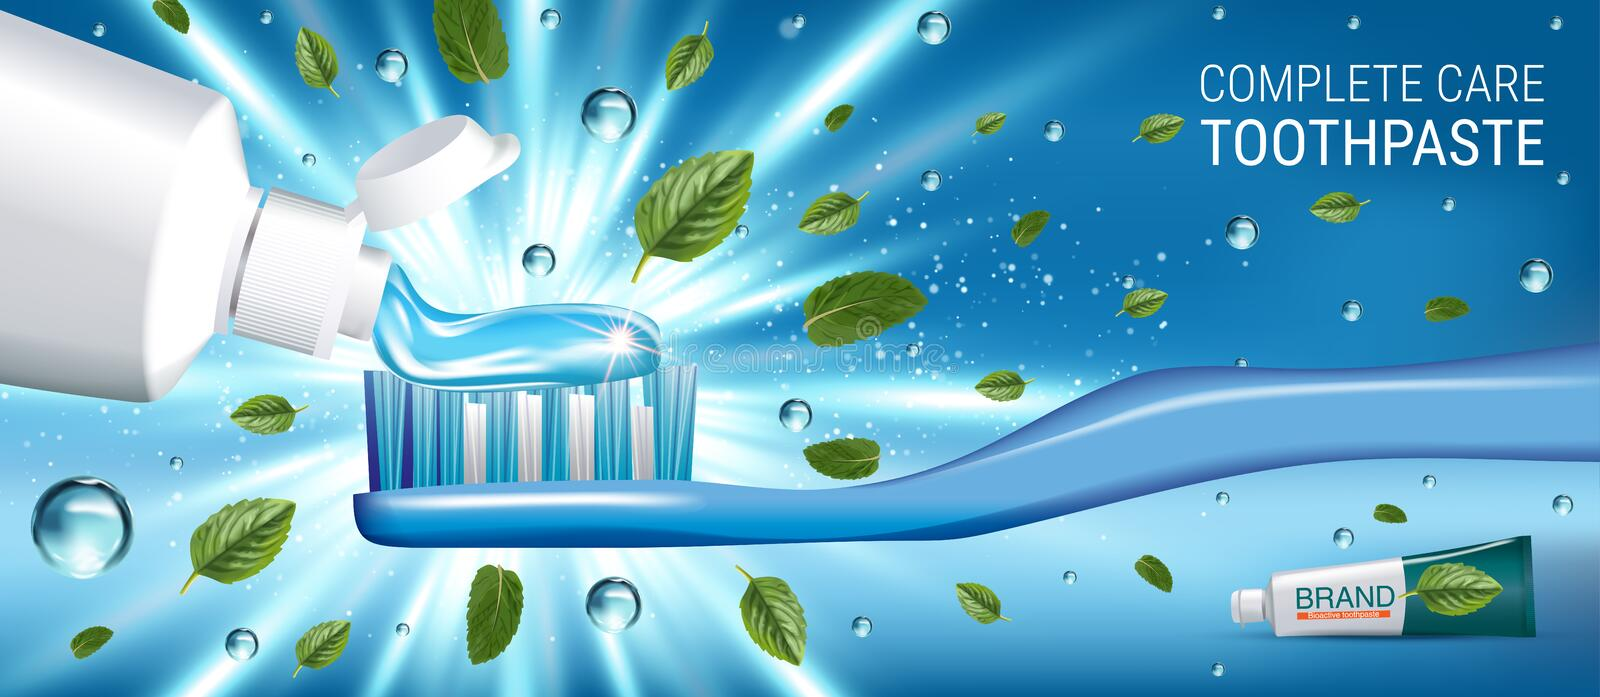 Antibacterial toothpaste ads. Vector 3d Illustration with toothpaste and mind leaves. Horizontal banner with product stock illustration